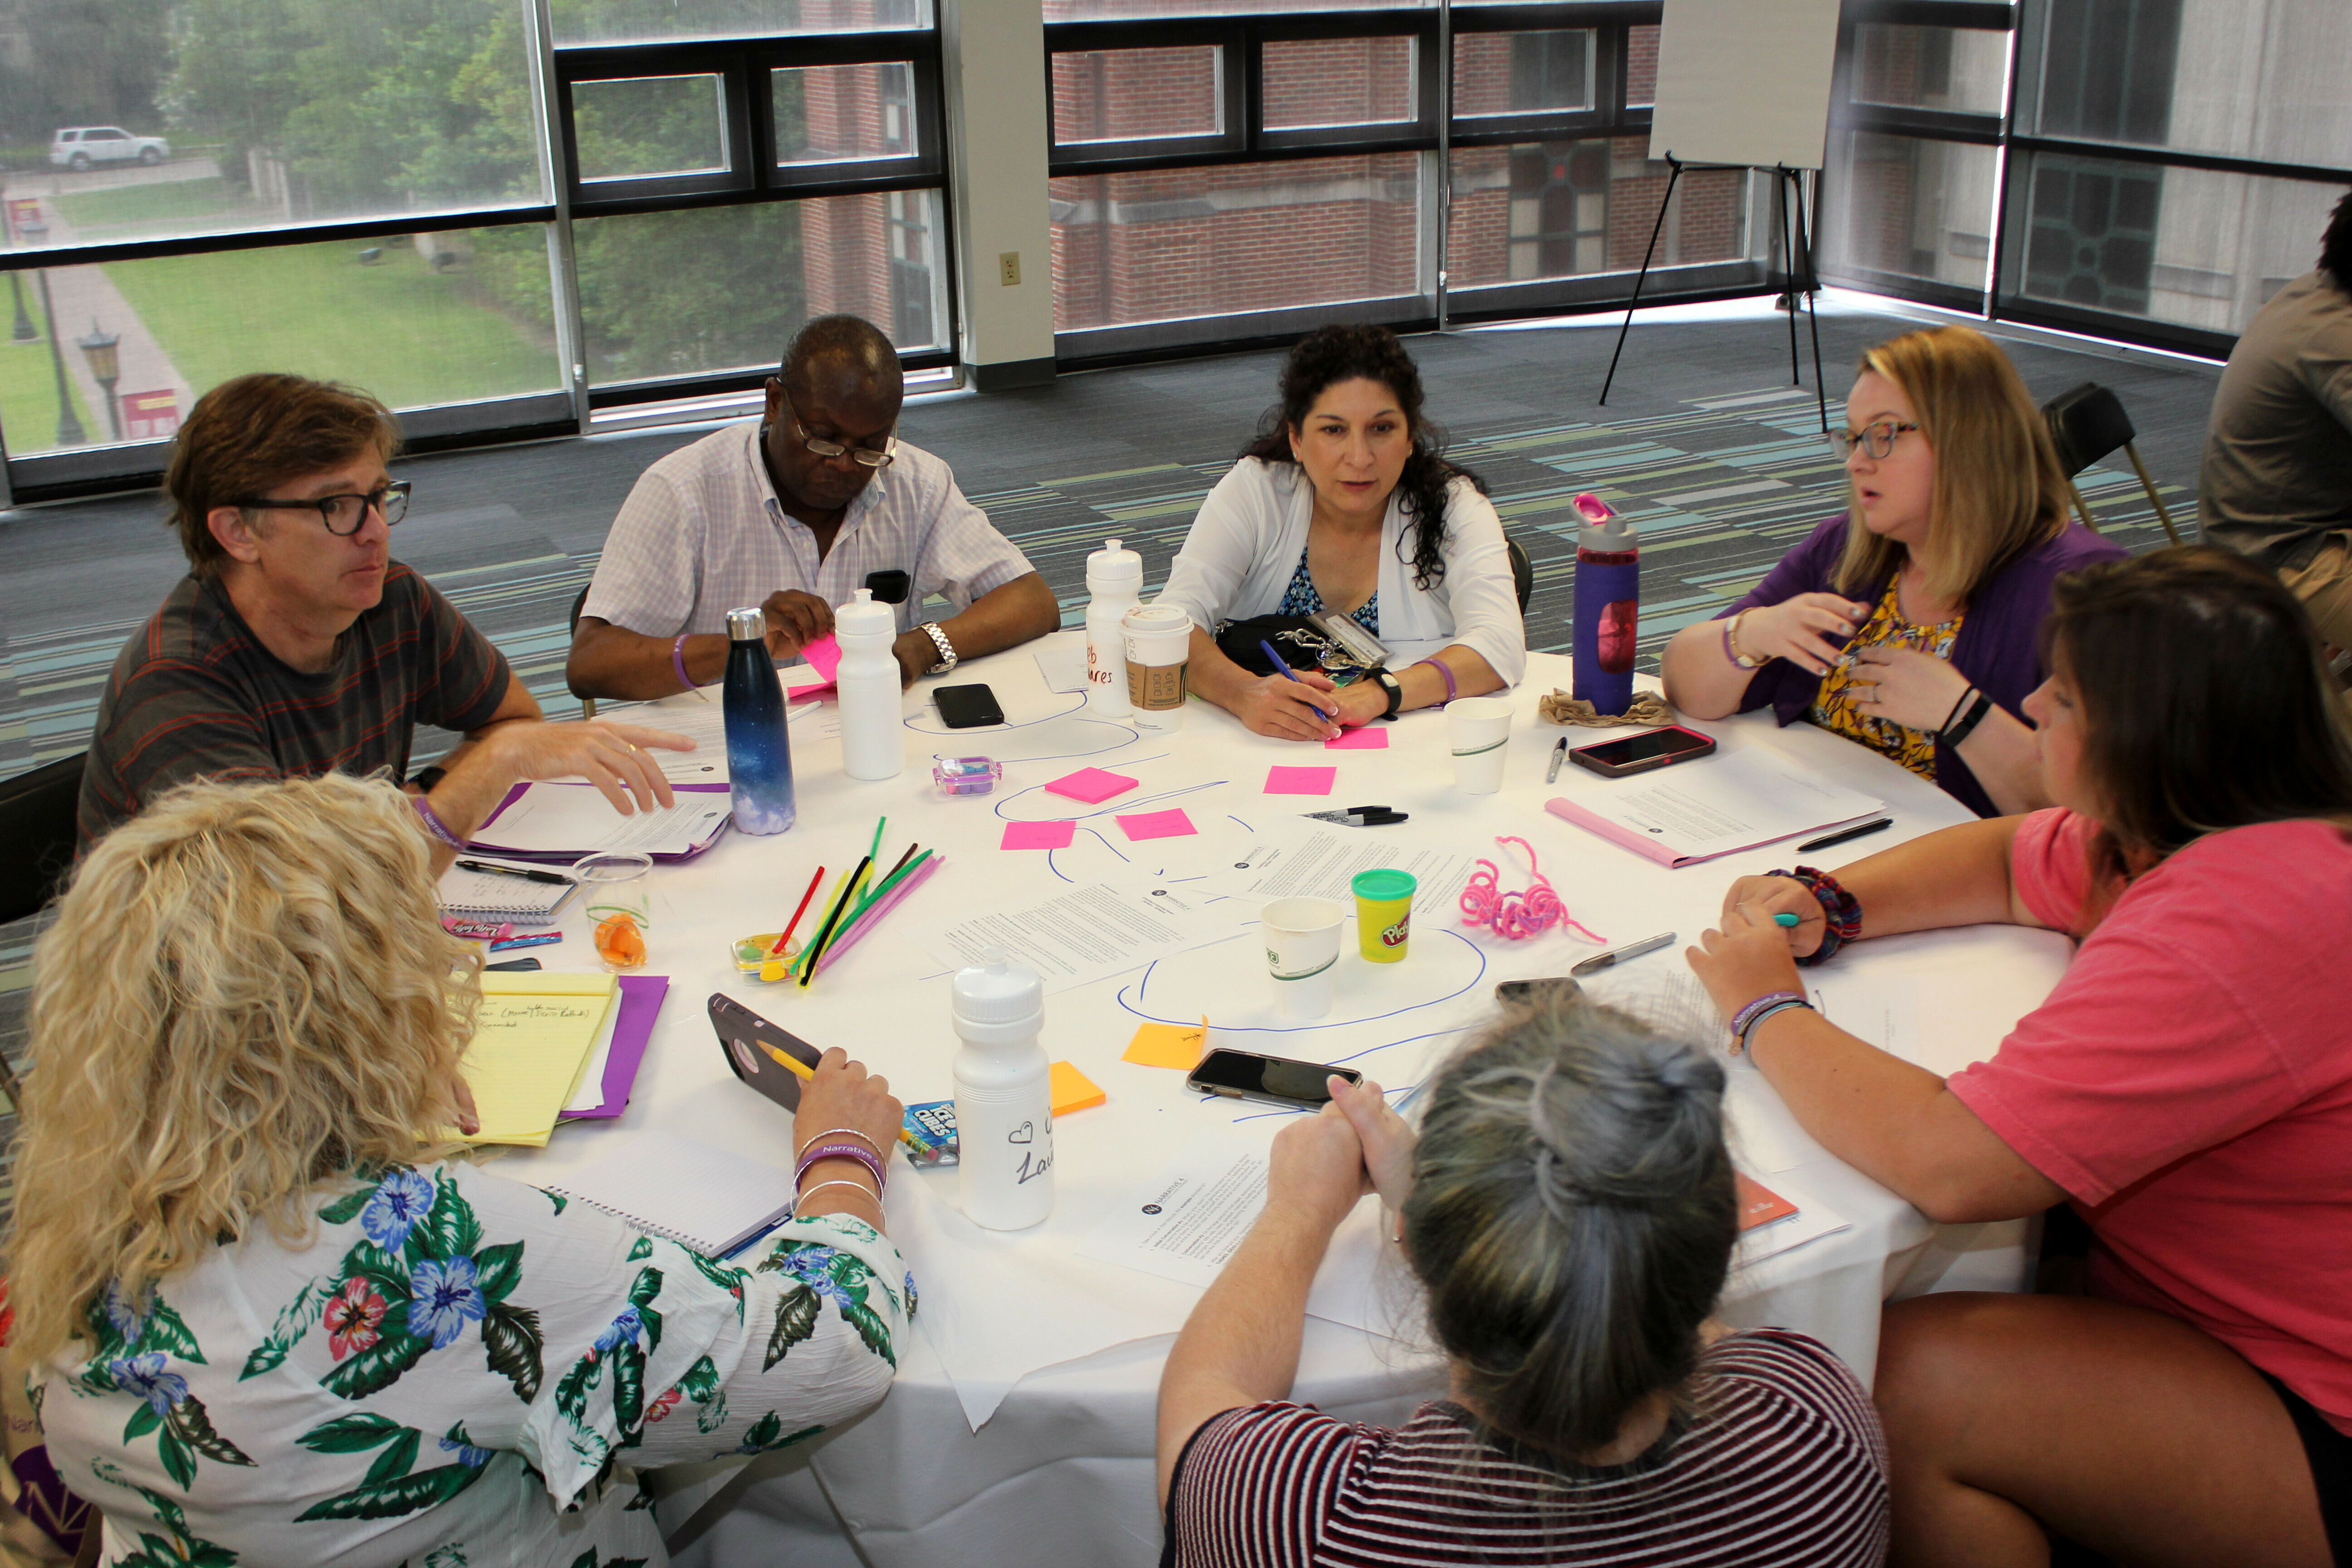 A group of teachers sit at a table and participate in a story exchange